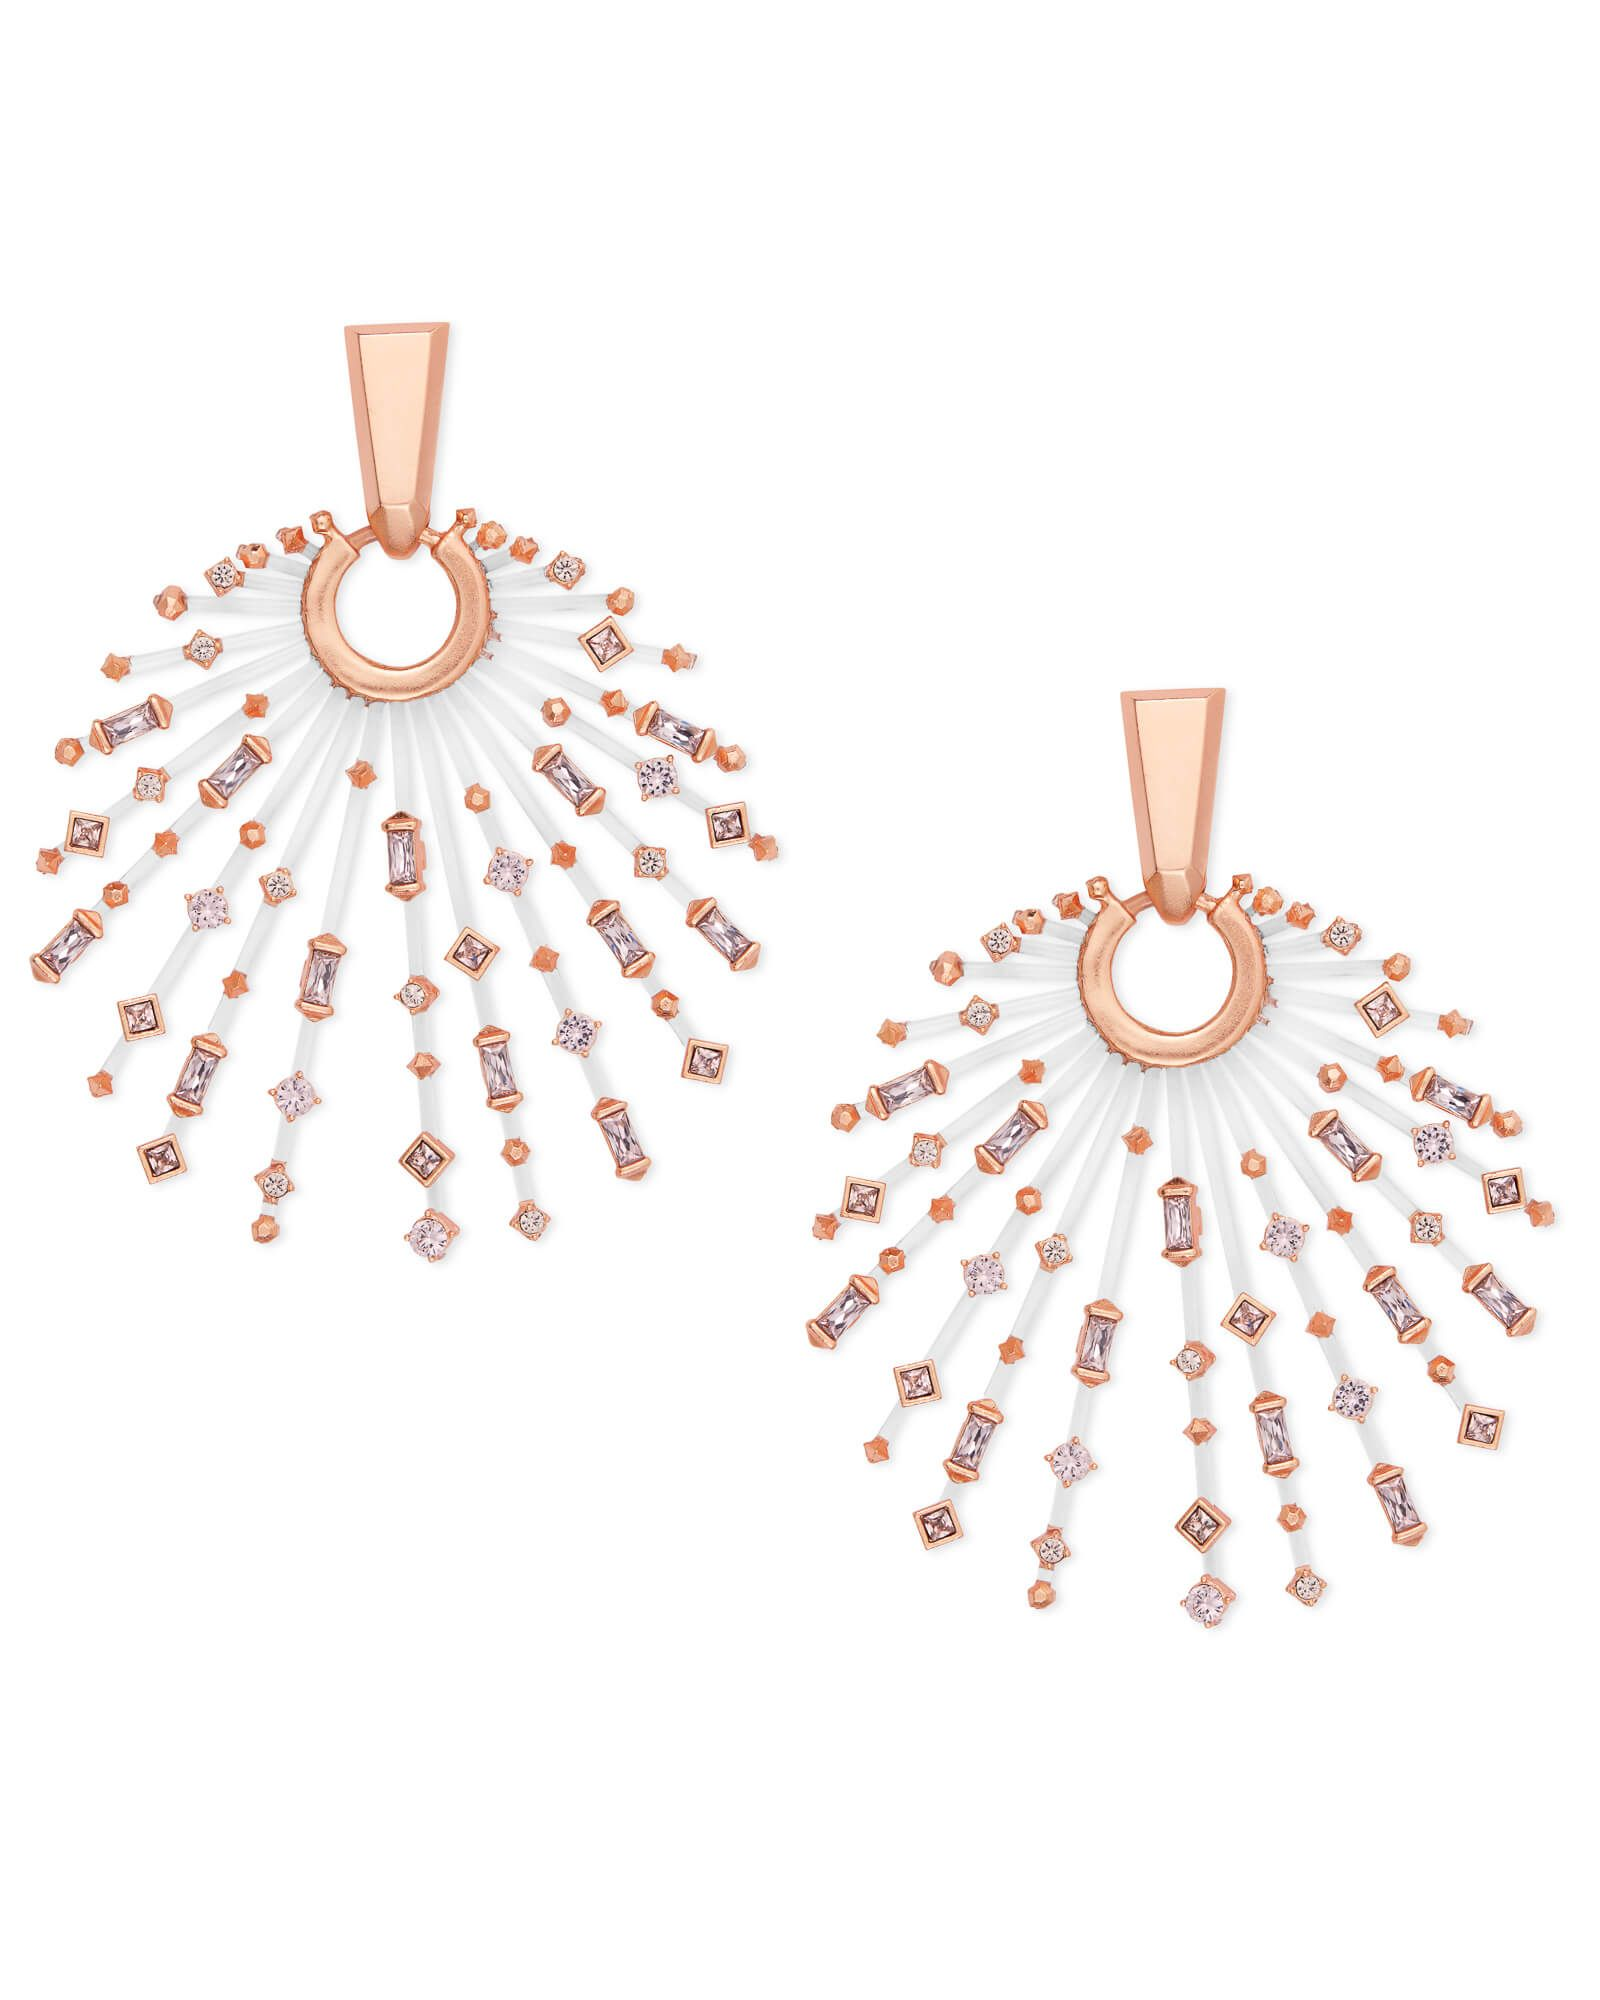 e7703e66e Get the Fabia Rose Gold Statement Earrings in Blush Mix for an arrangement  of hand-place pave crystals, held together with thin acrylic rods.